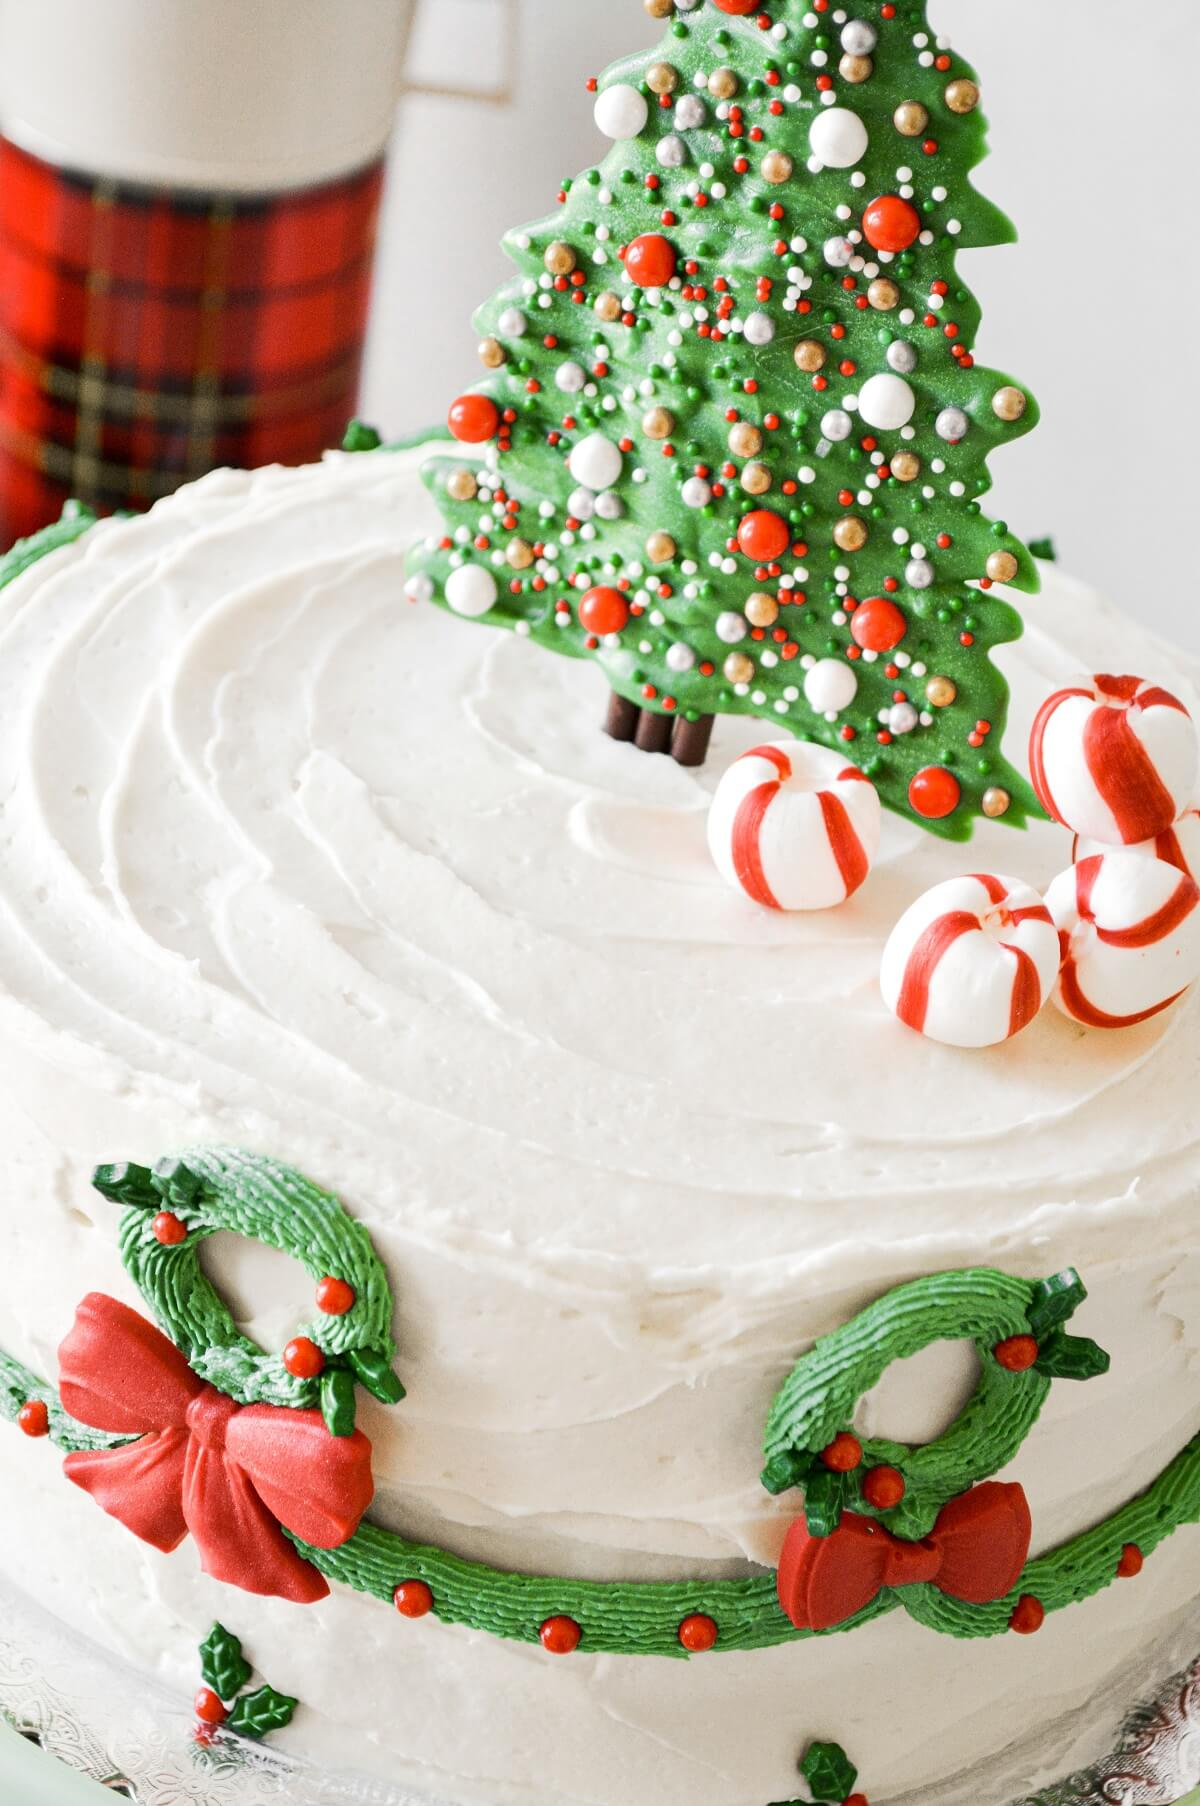 A Christmas cake with a candy Christmas tree cake topper with sprinkles, peppermints and buttercream wreaths piped around the sides.